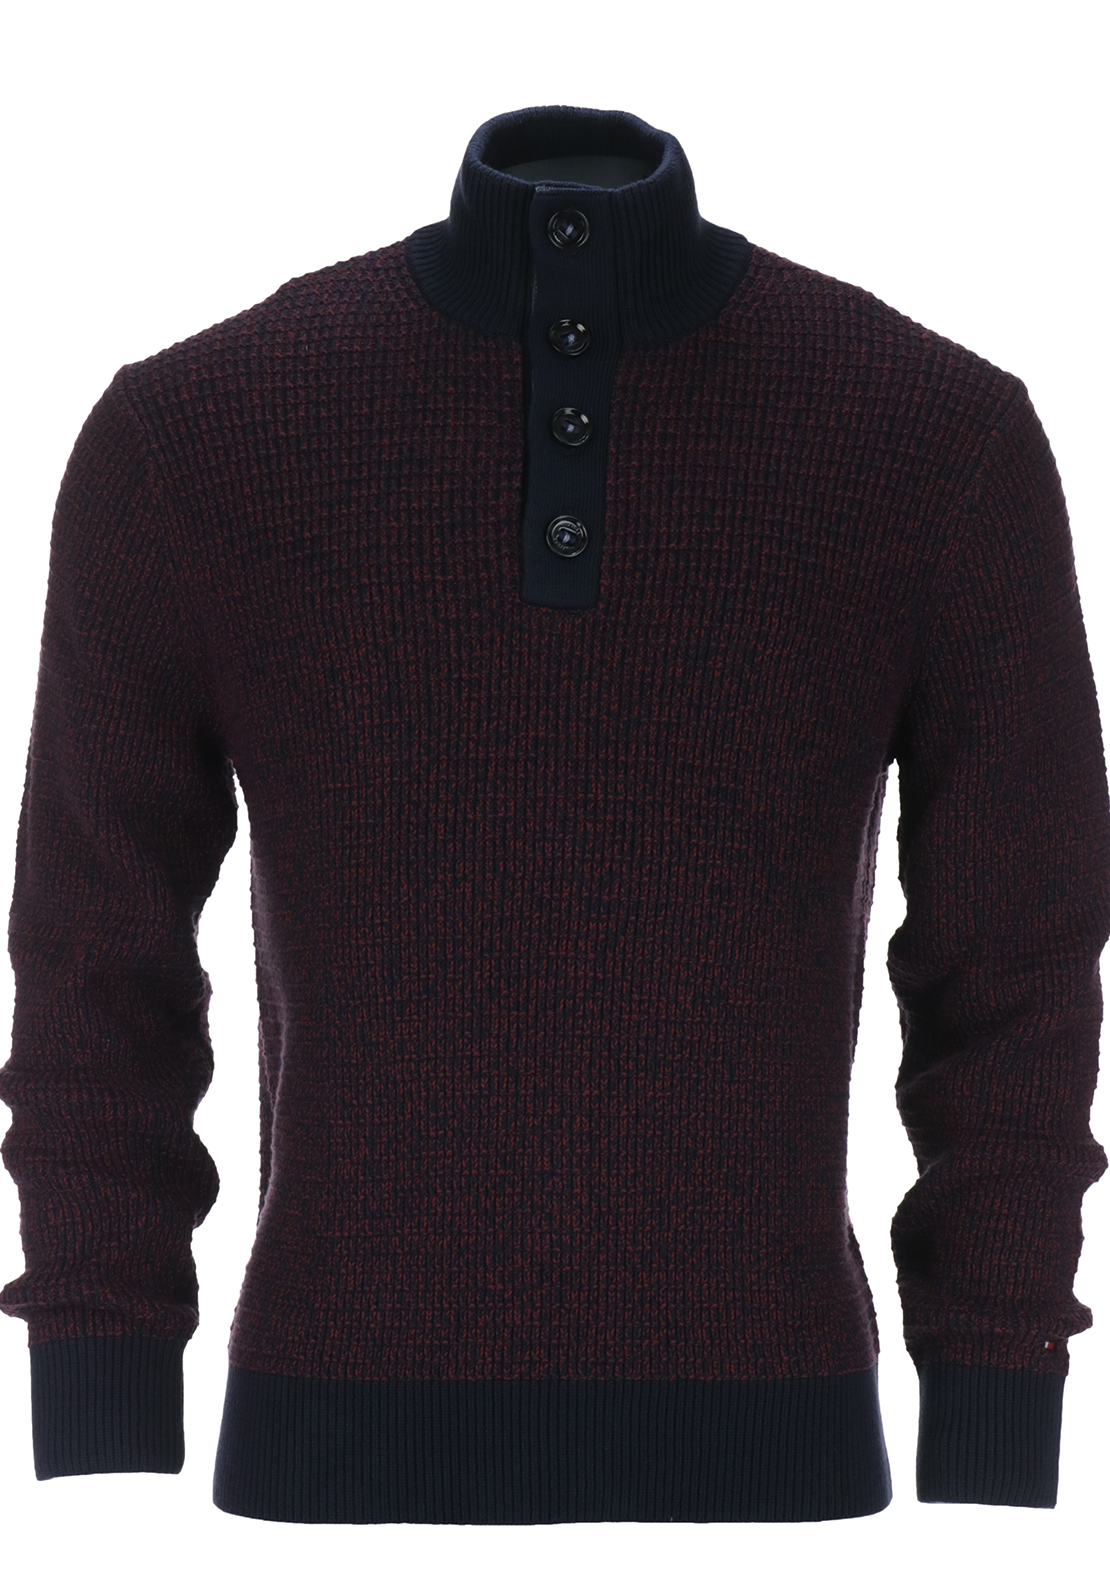 Tommy Hilfiger Mens Tylor Chunky Knit Jumper, Wine and Navy